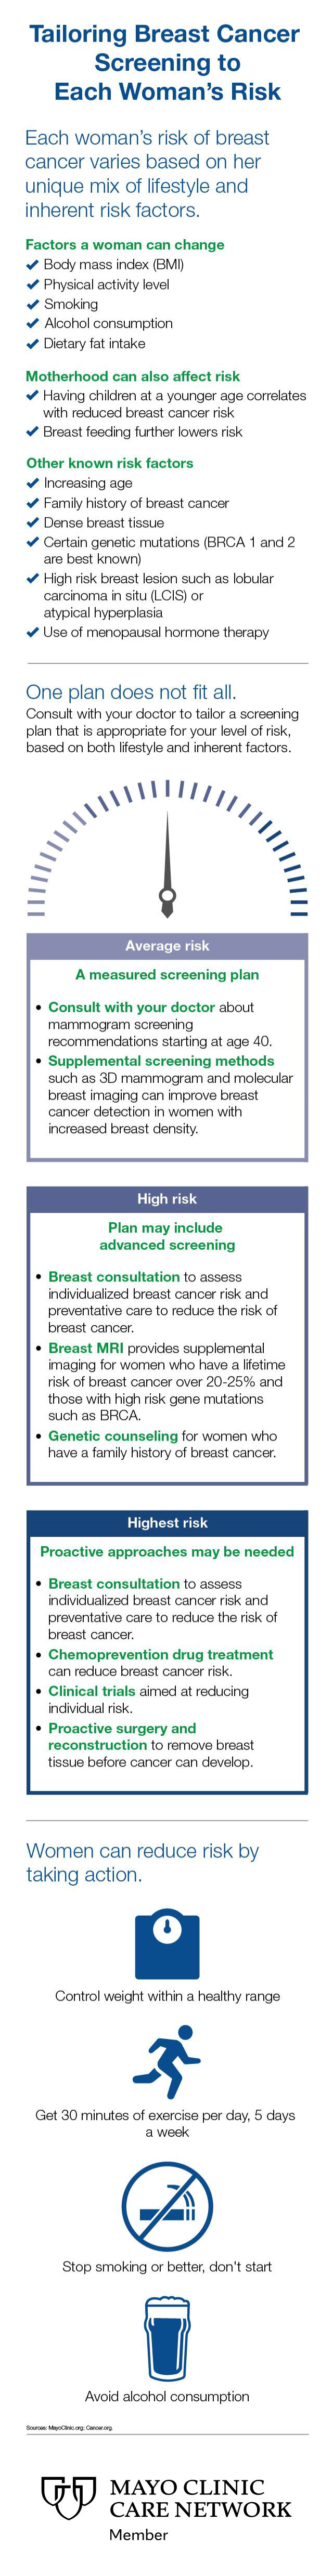 Infographic from the Mayo Clinic that discusses breast cancer risks women should be aware of and steps they can take to reduce their risk.